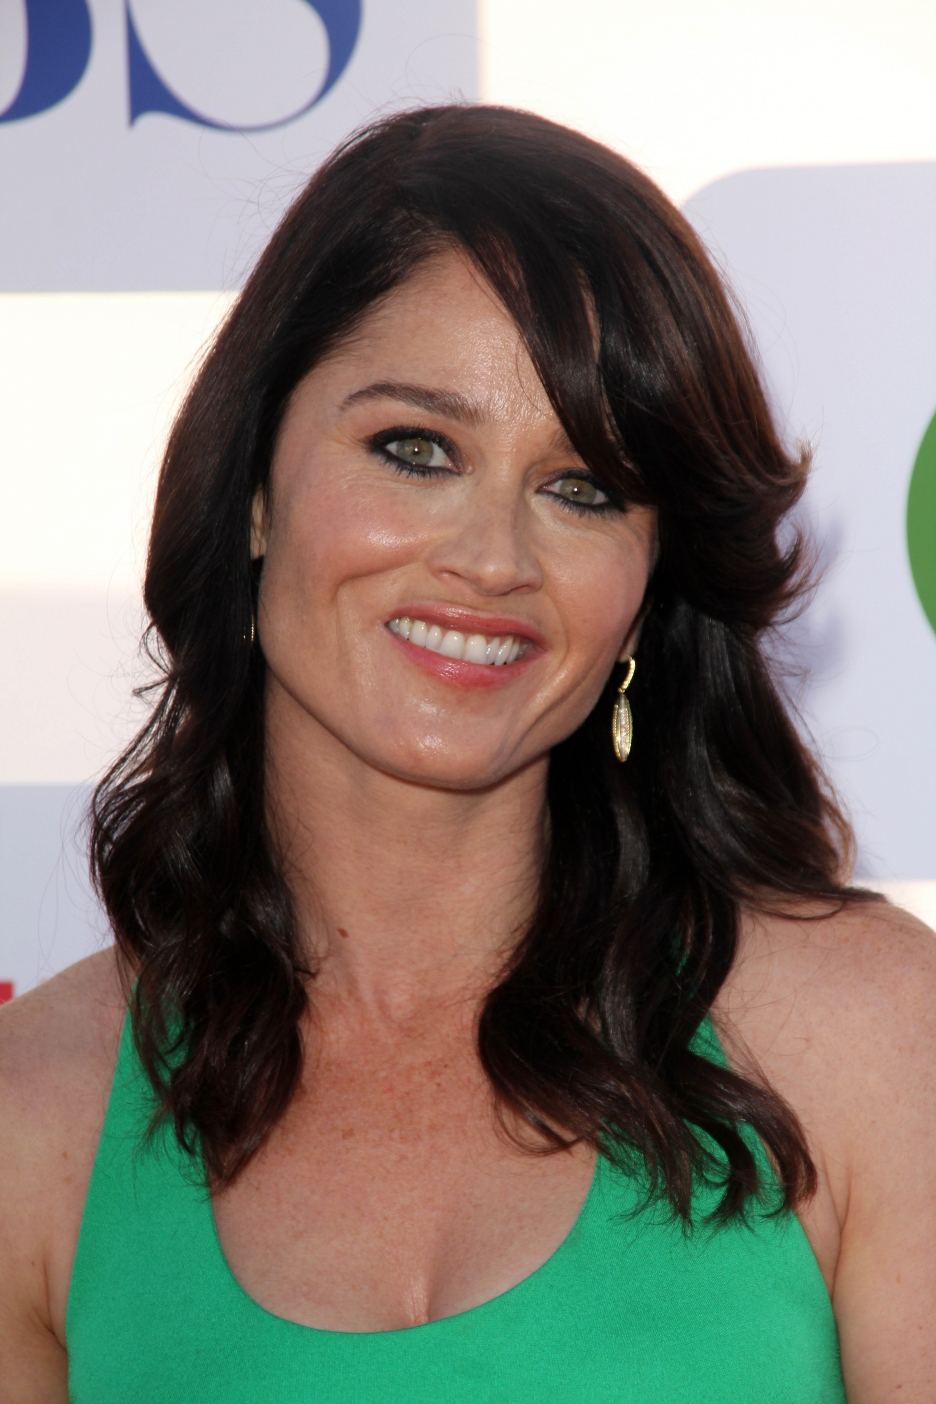 Robin Tunney High Resolution Stock Photography and Images ... |Robin Tunney The Mentalist